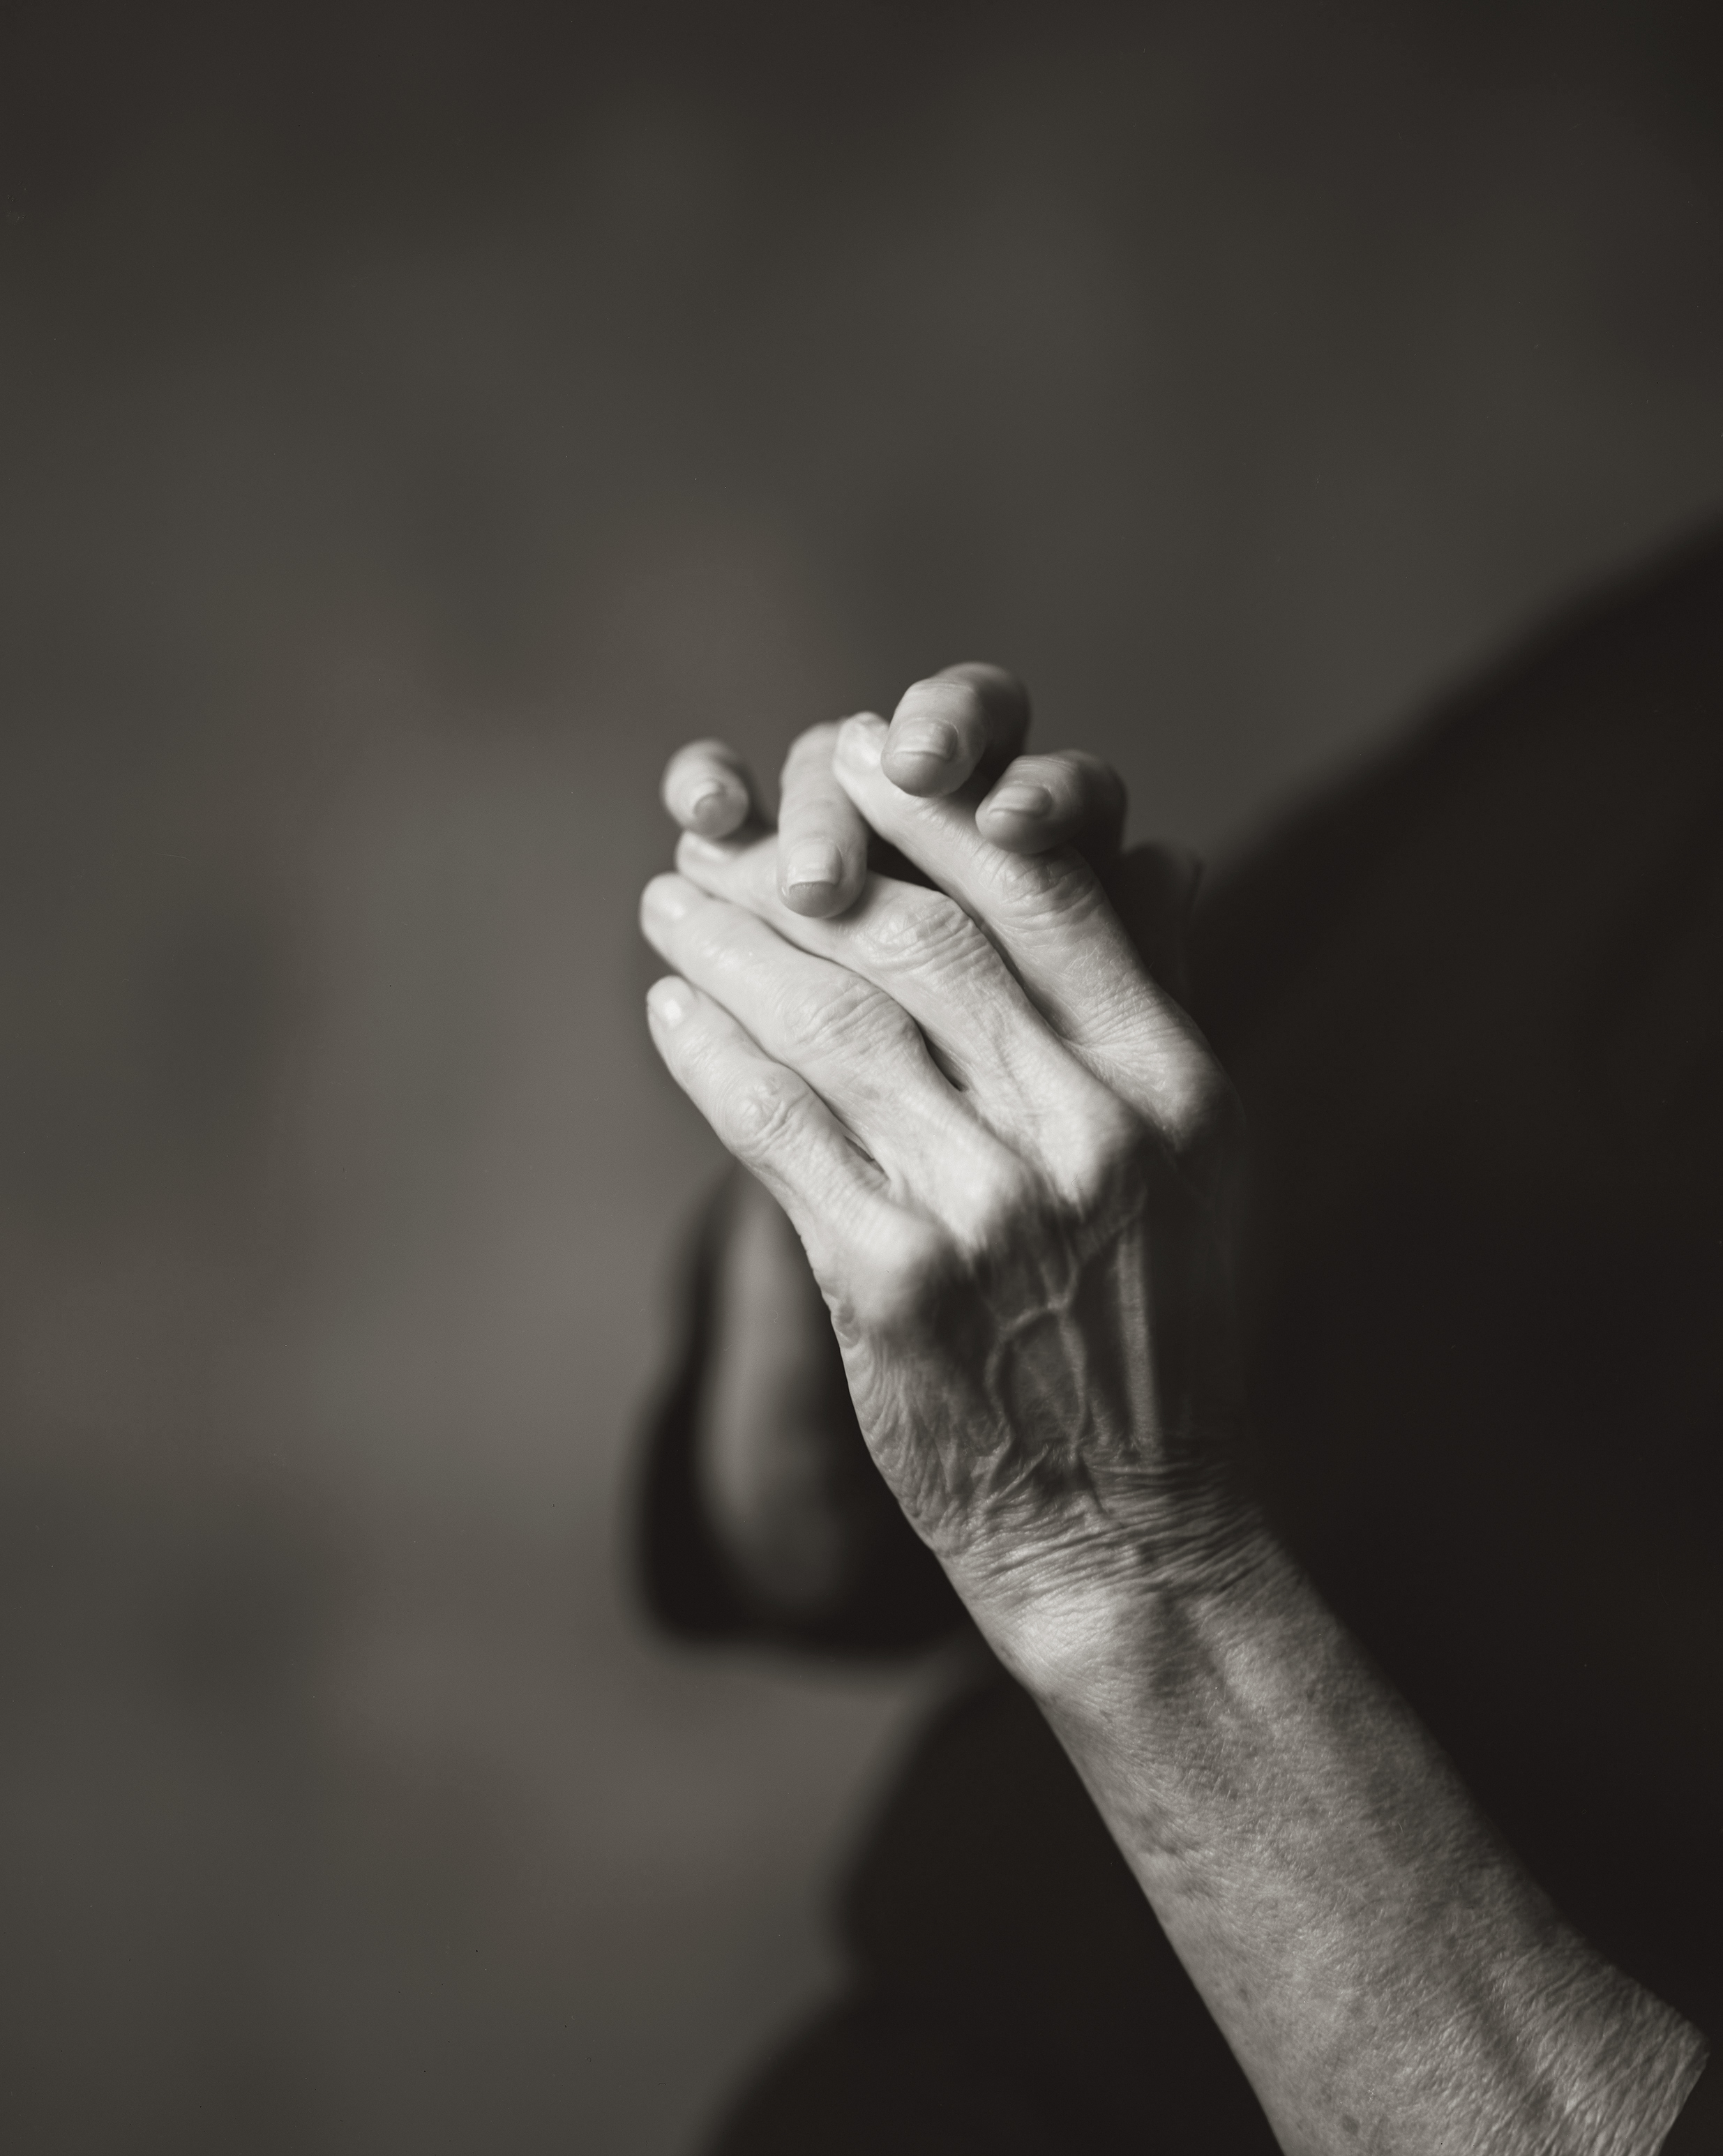 MY MOTHER'S HANDS, WITH ARTHRITIS